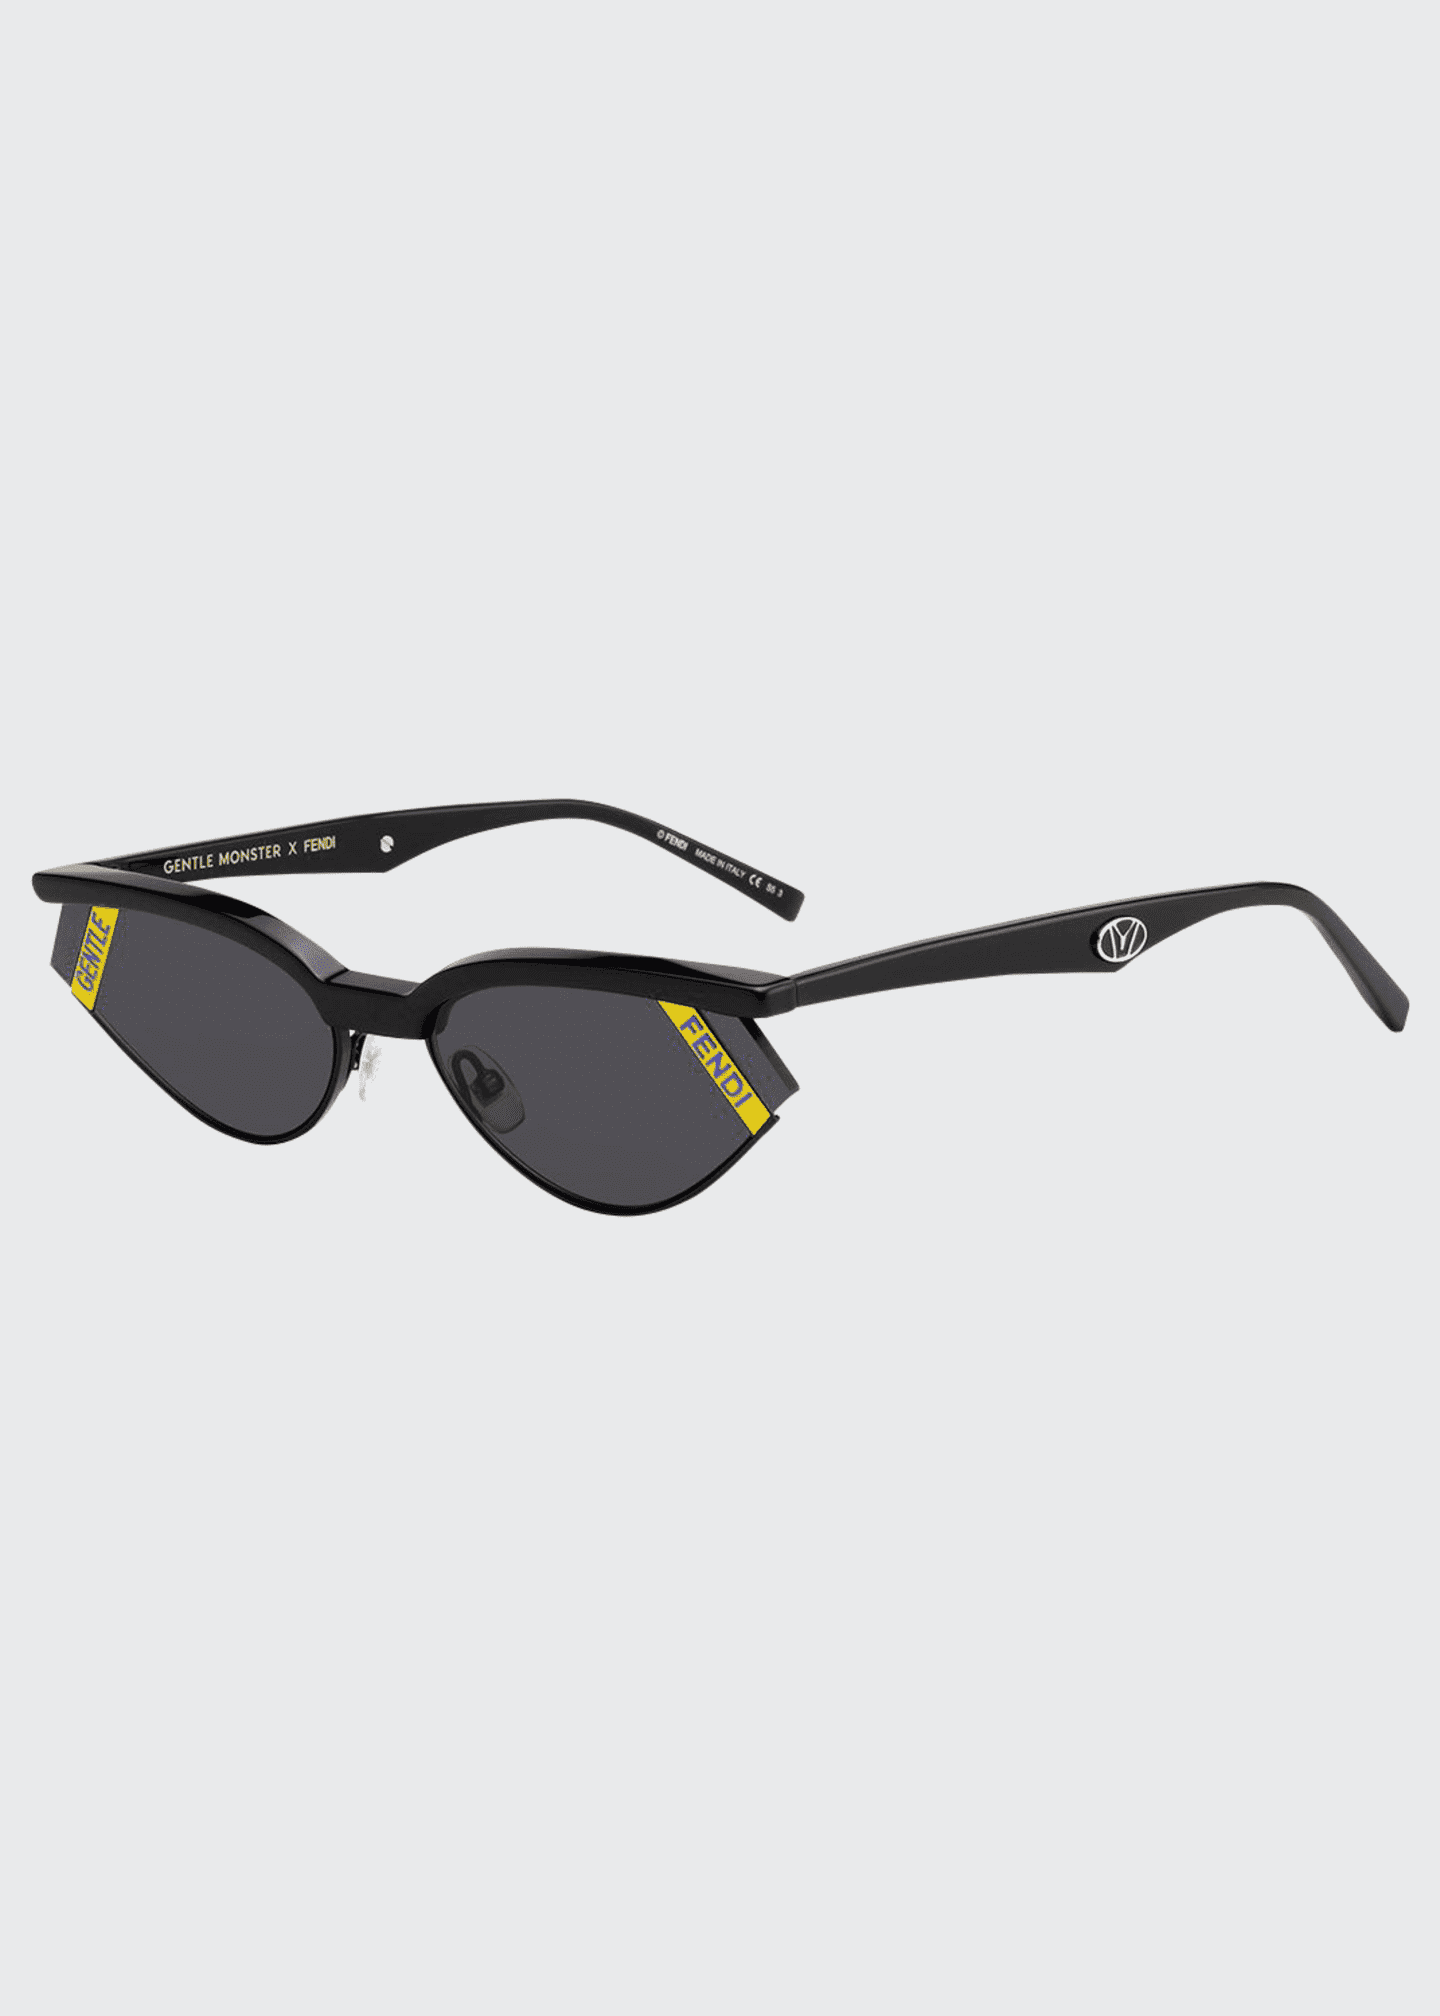 Fendi x Gentle Monster Oval Sunglasses